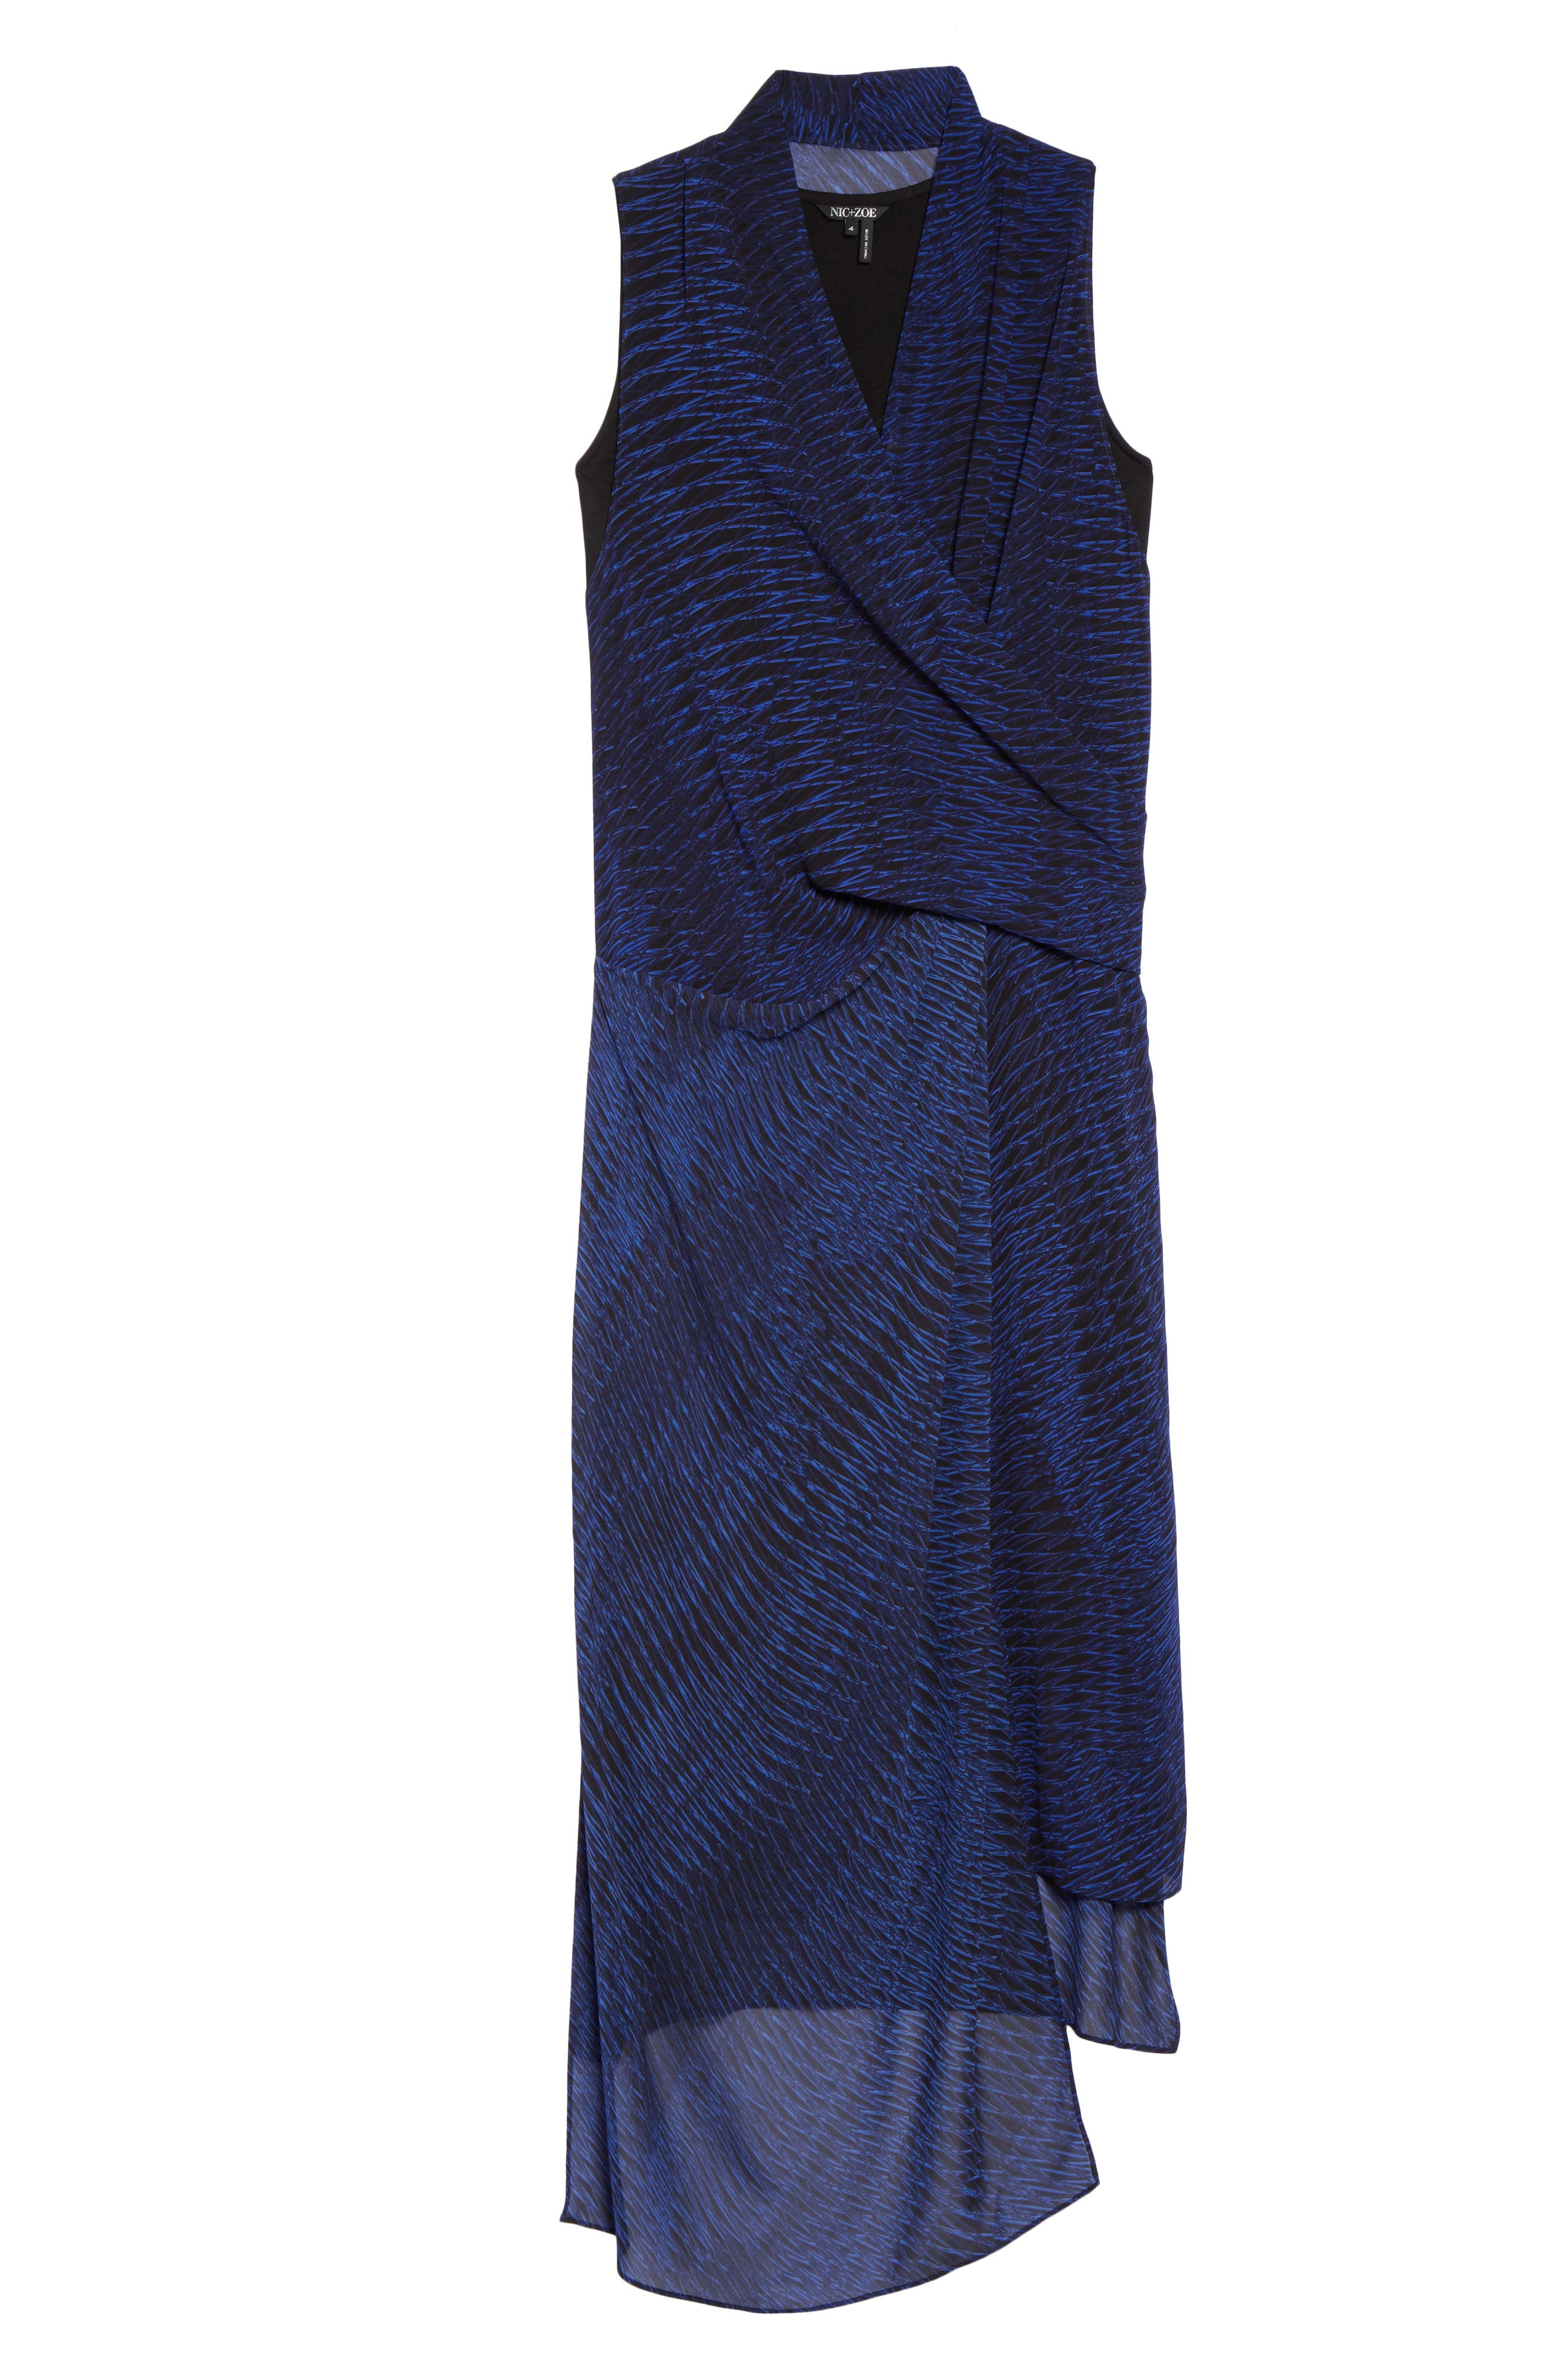 Blue Streaks Midi Dress,                             Alternate thumbnail 6, color,                             465